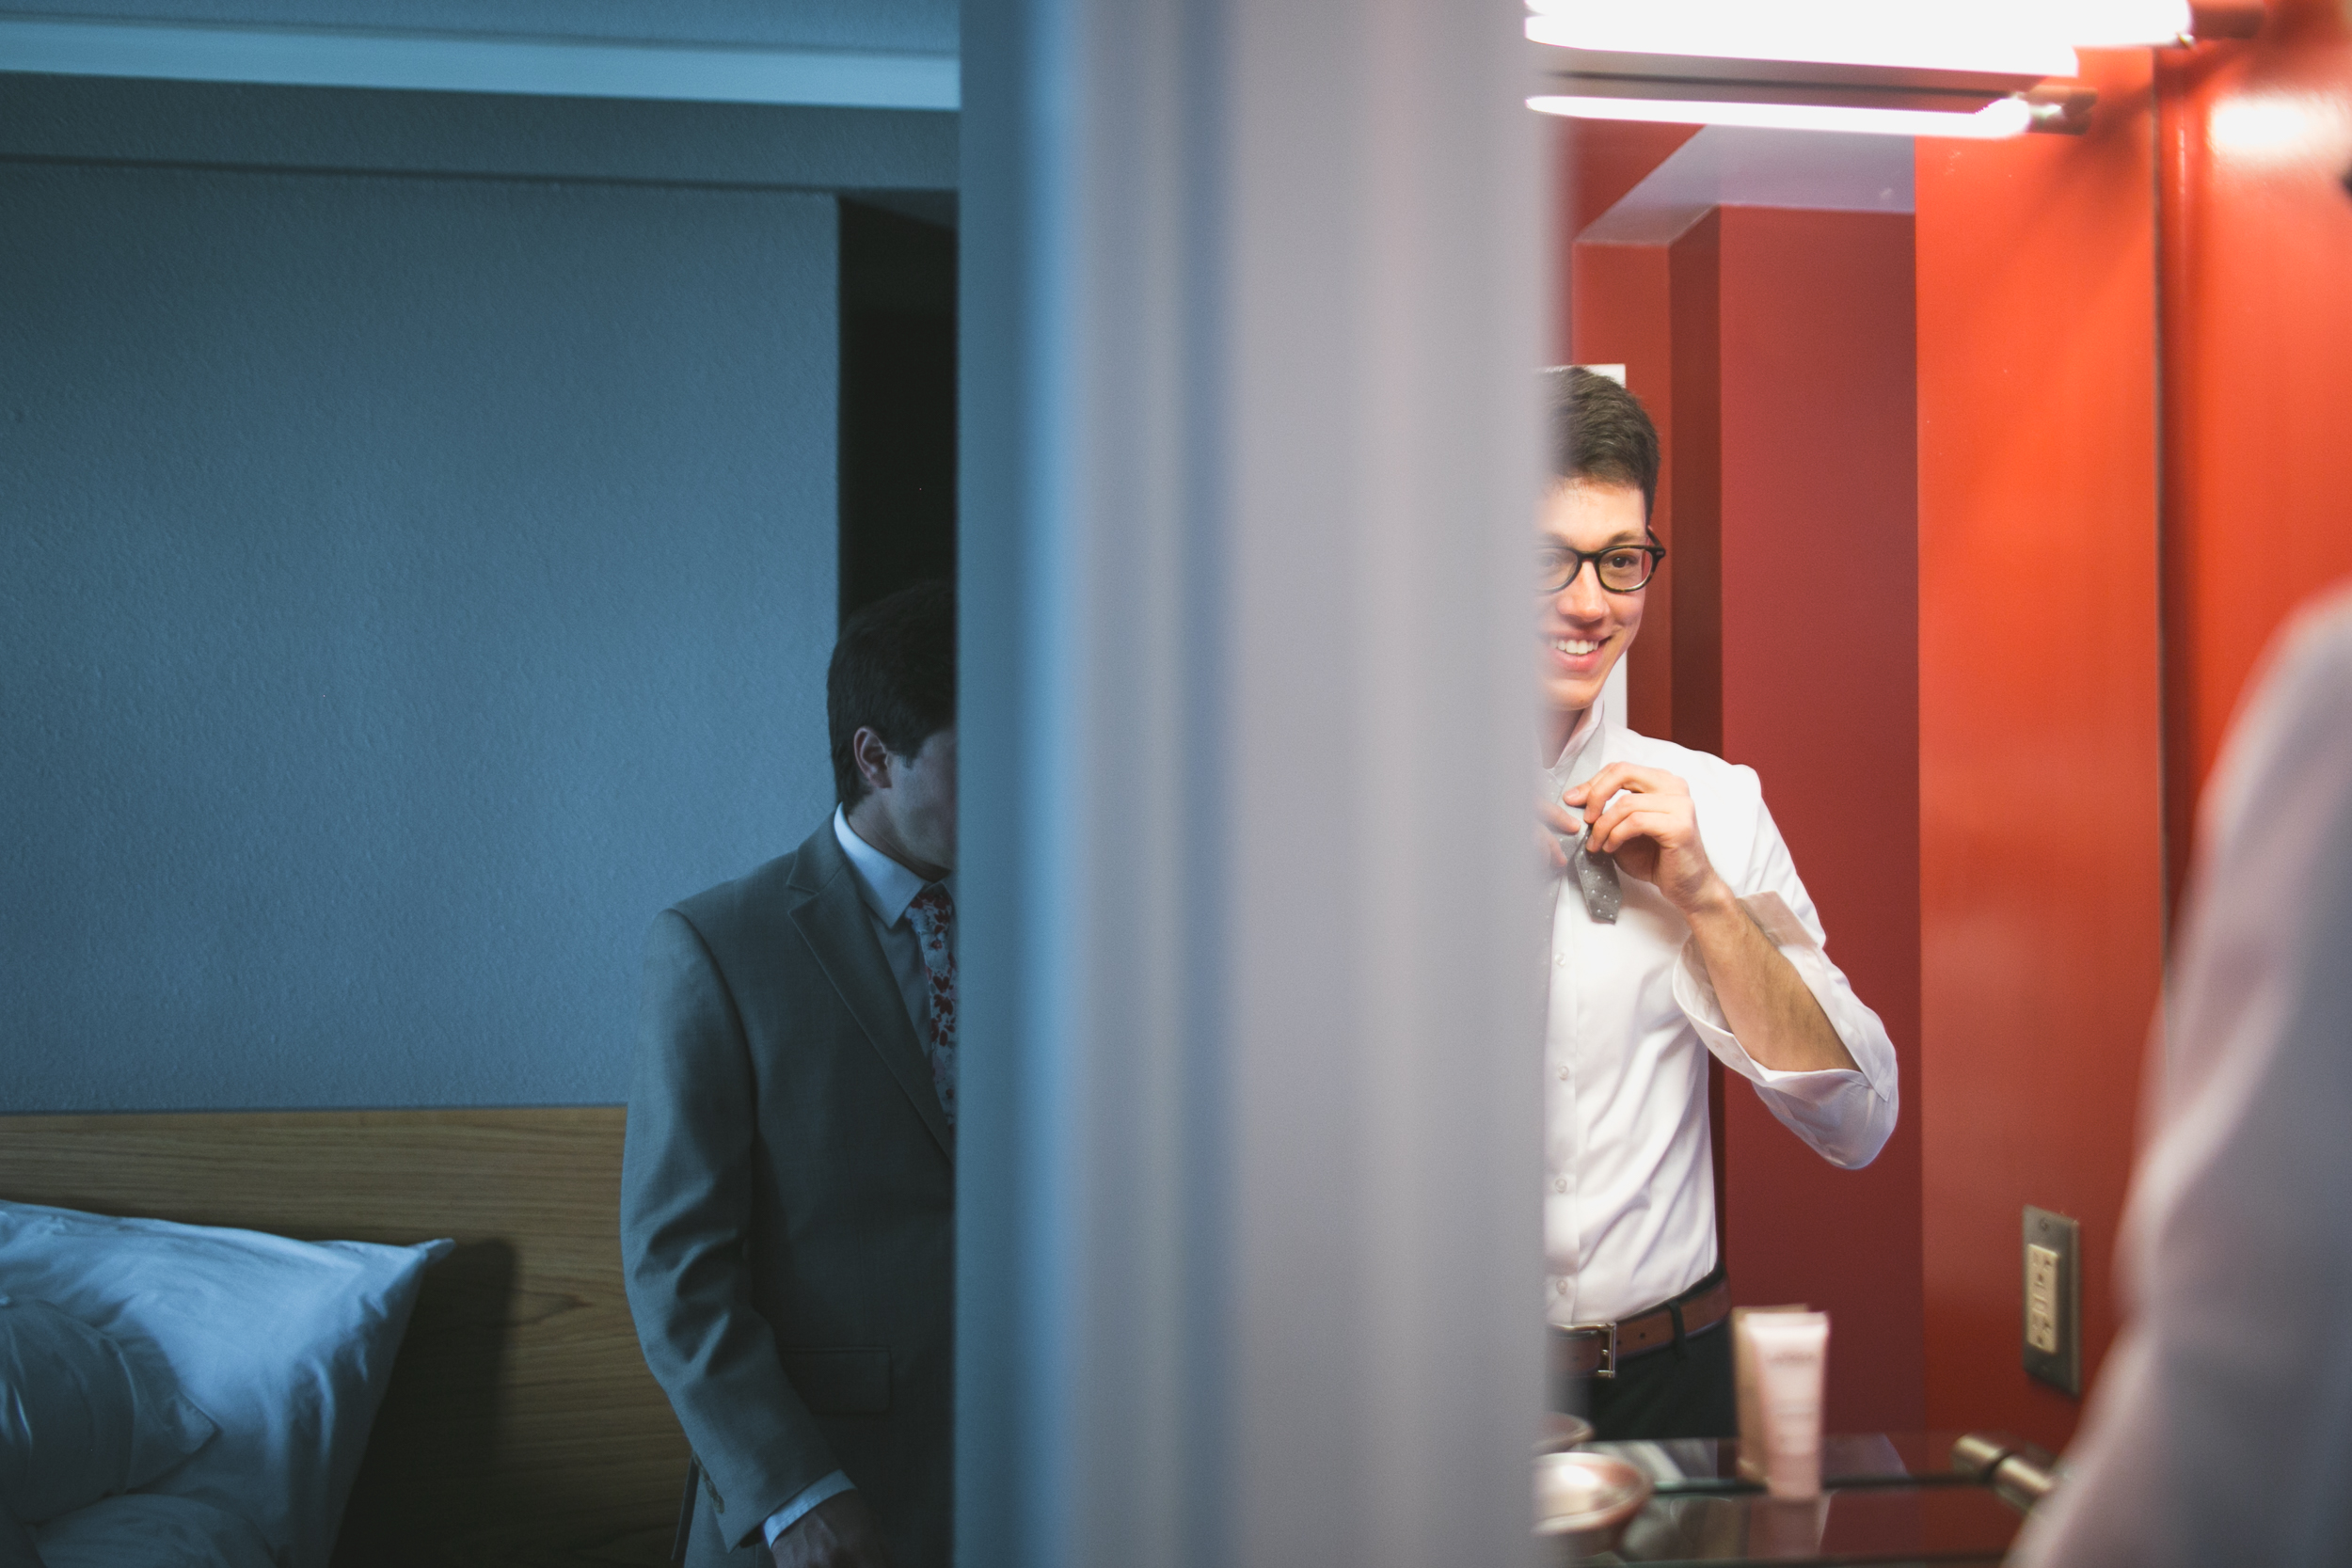 groom getting ready in front of a mirror